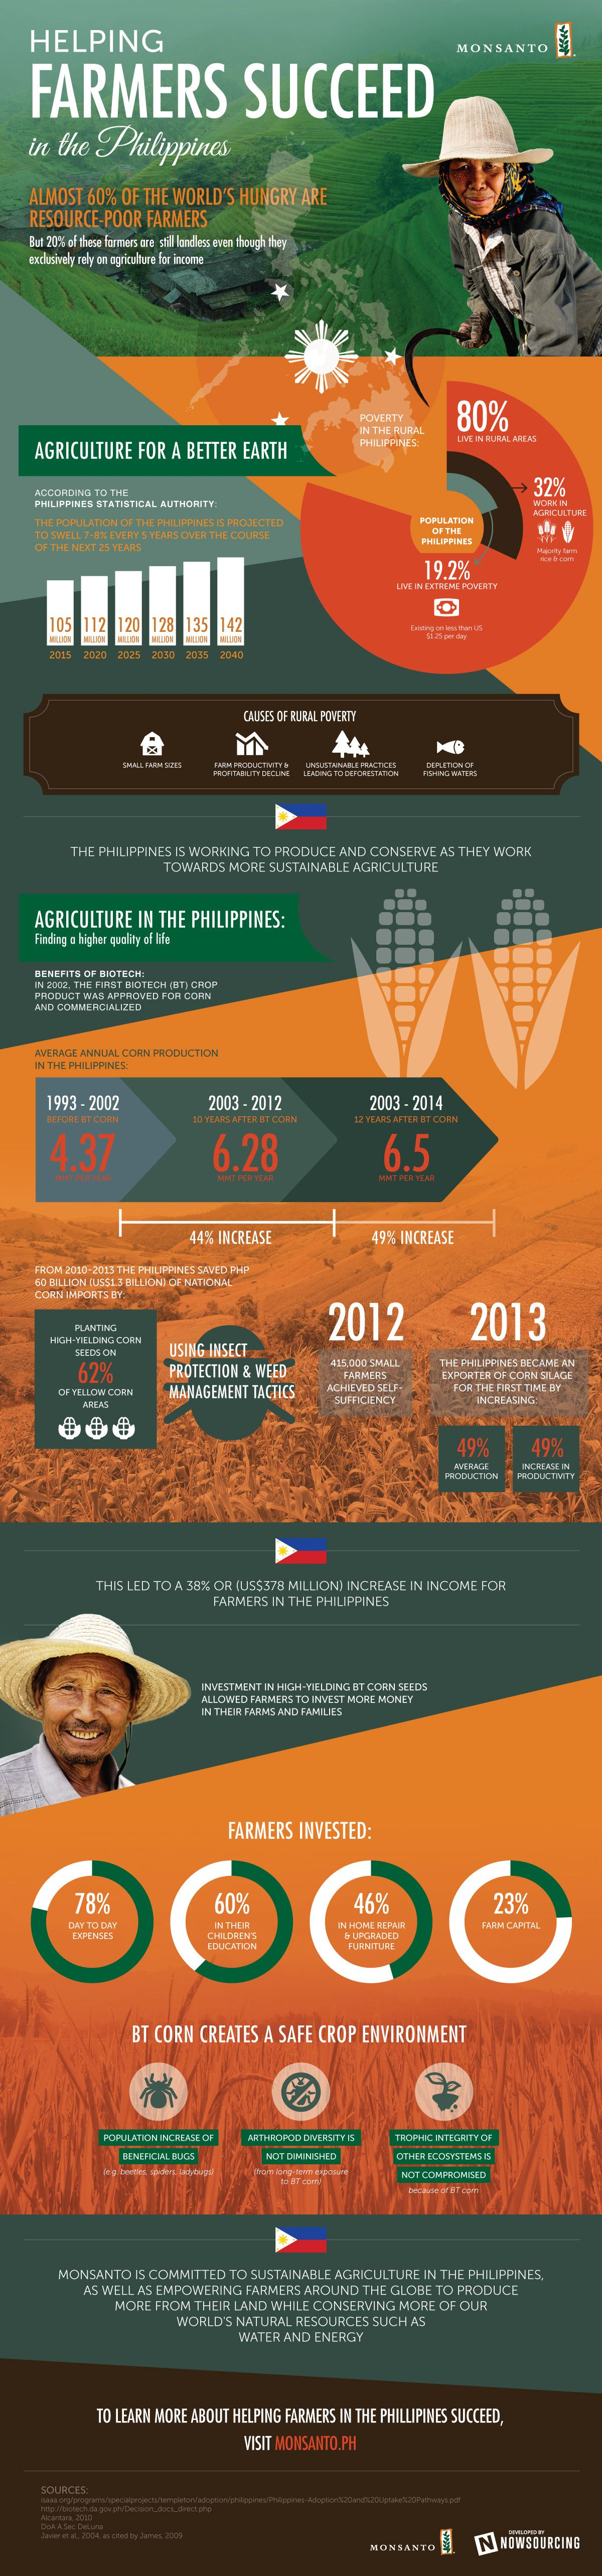 Helping Farmers Succeed in the Philippines